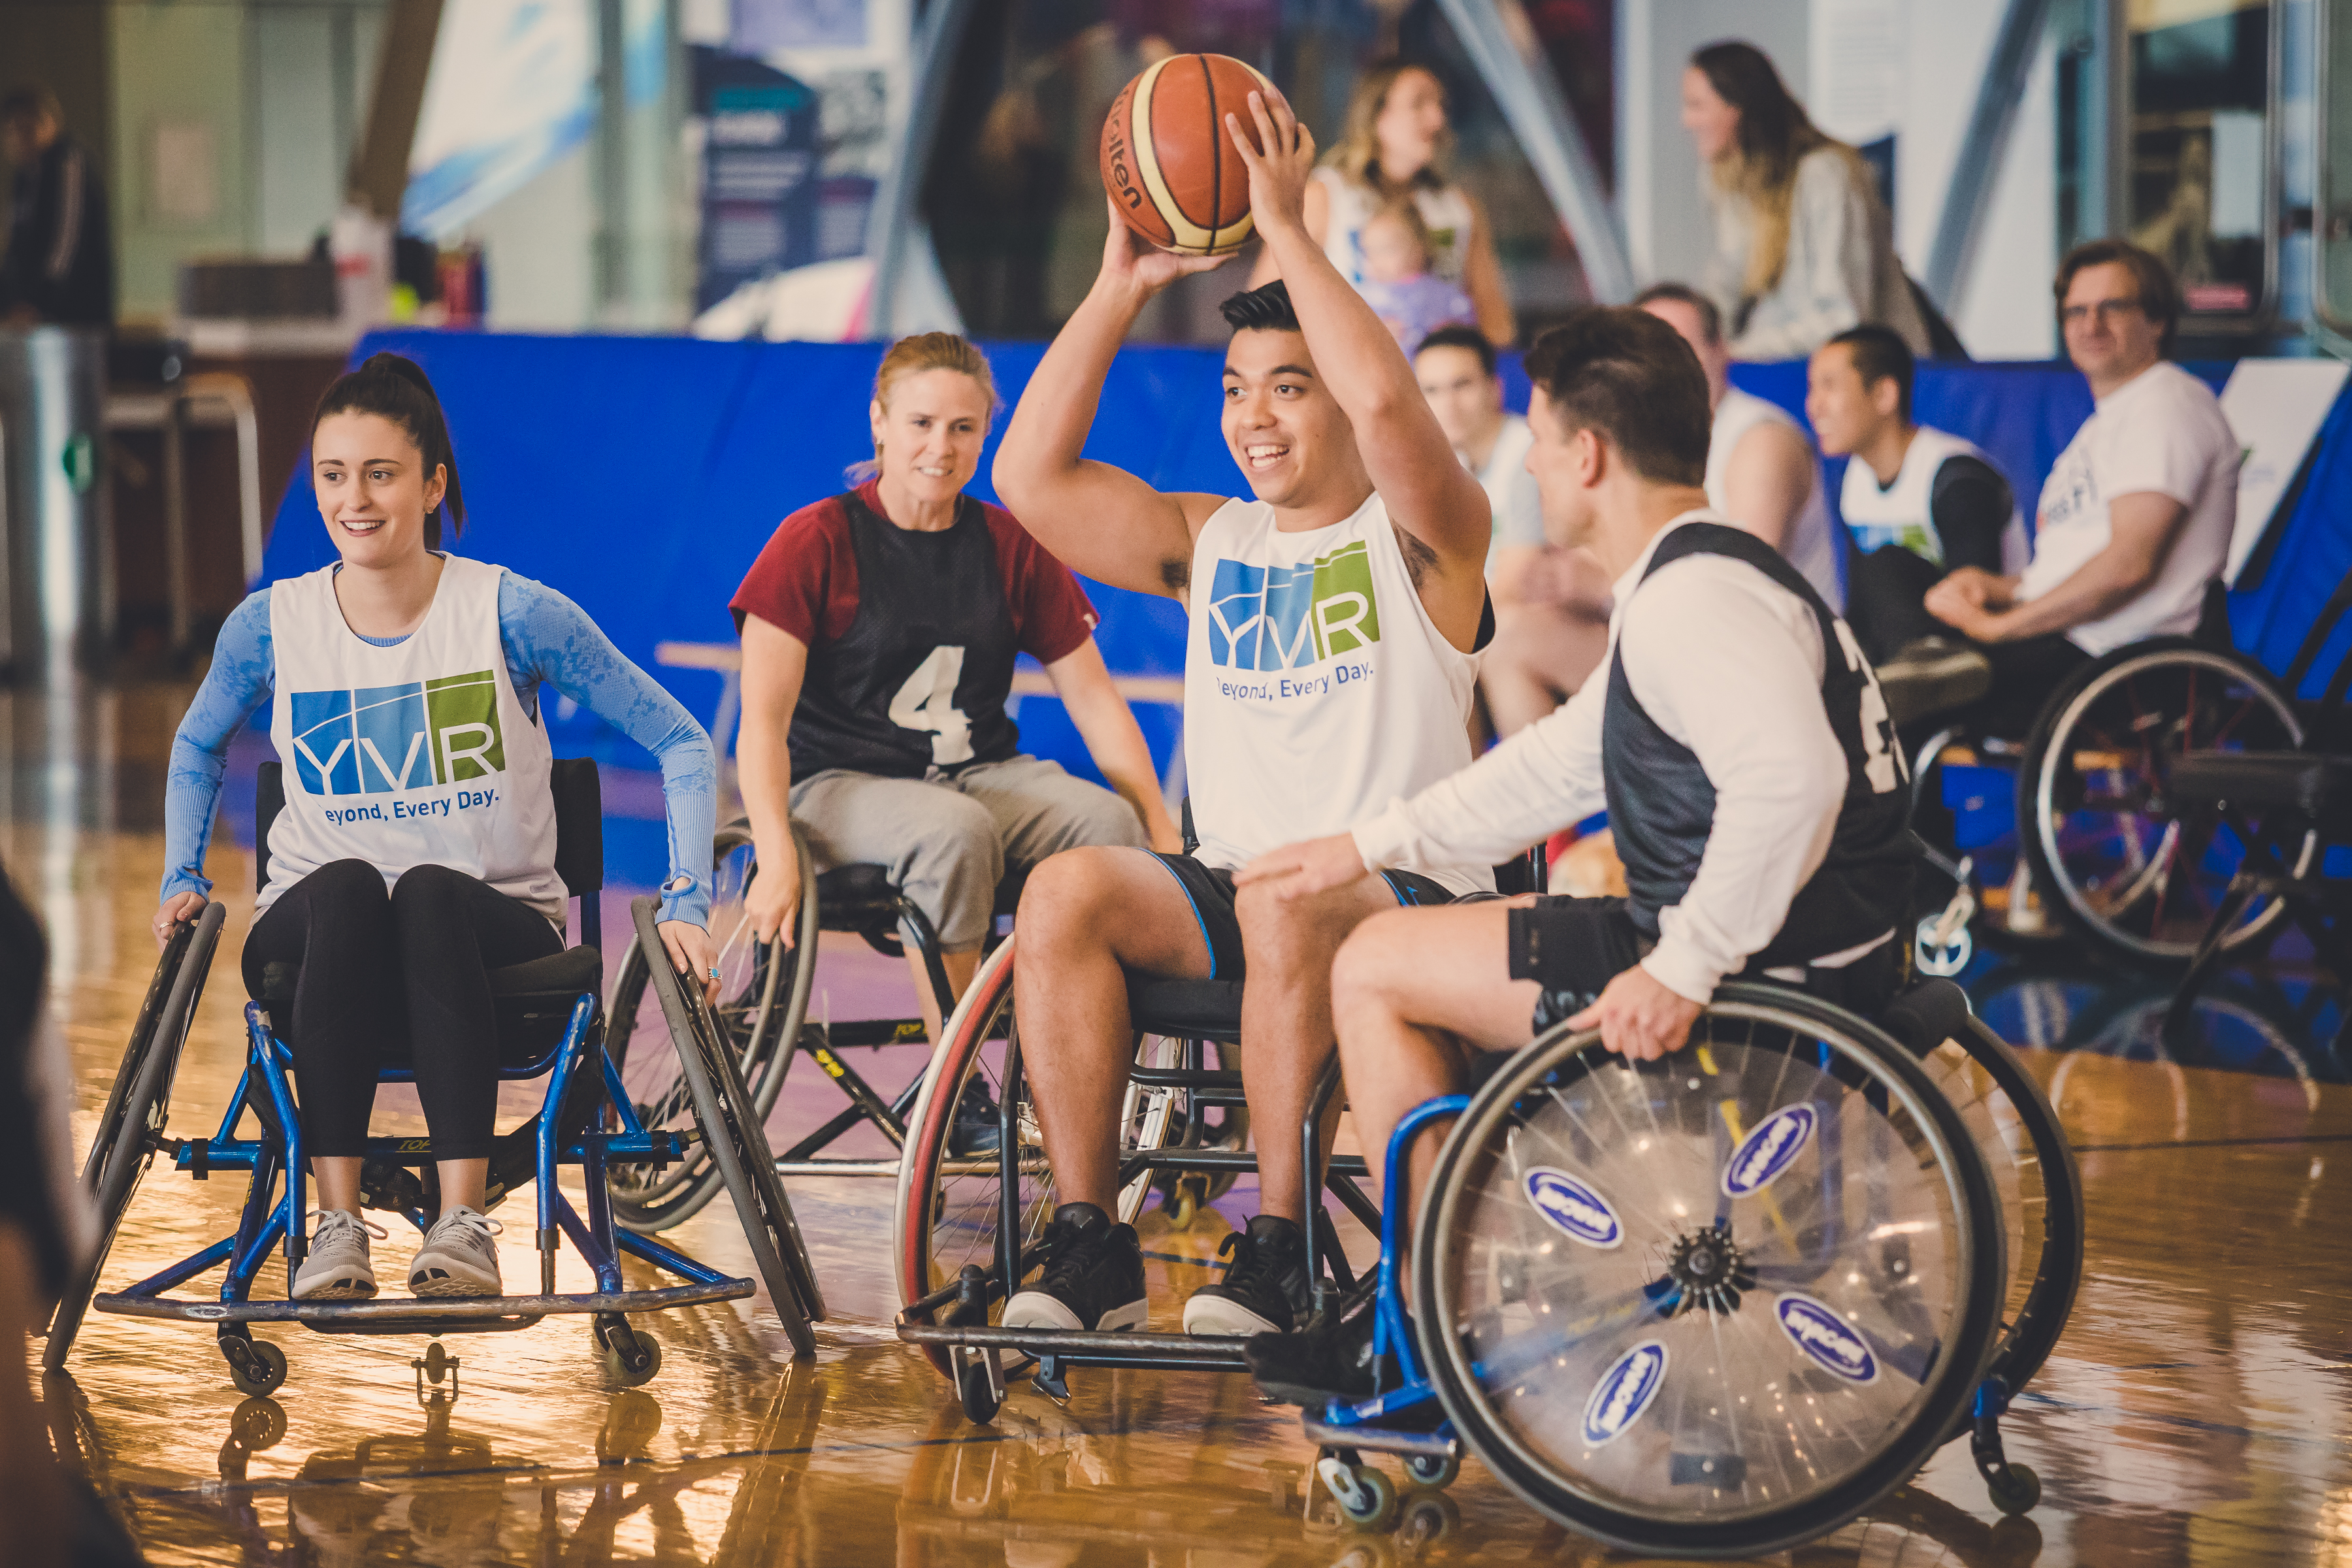 YVR employees playing wheelchair basketball